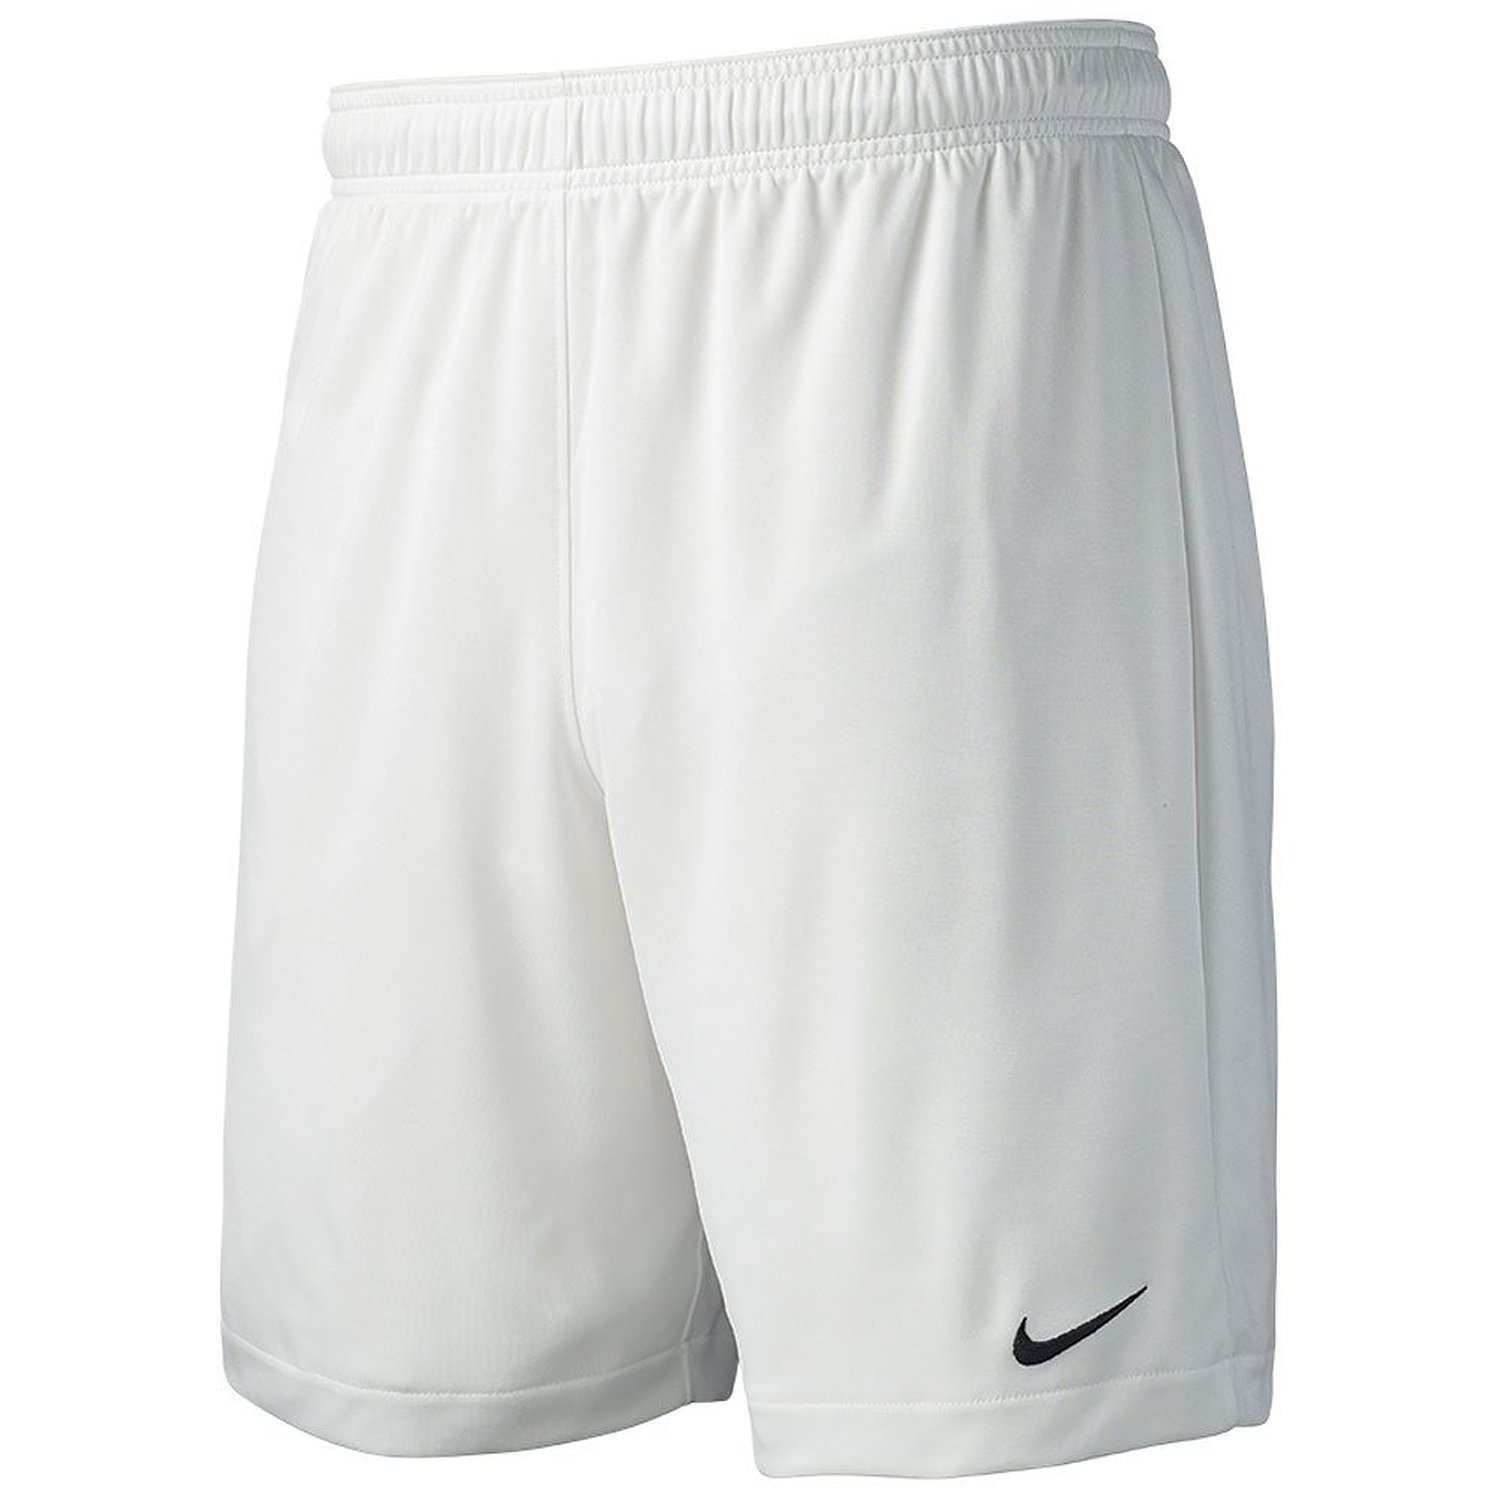 ... picture of nike mens team equalizer soccer shorts ... JDCJXRF